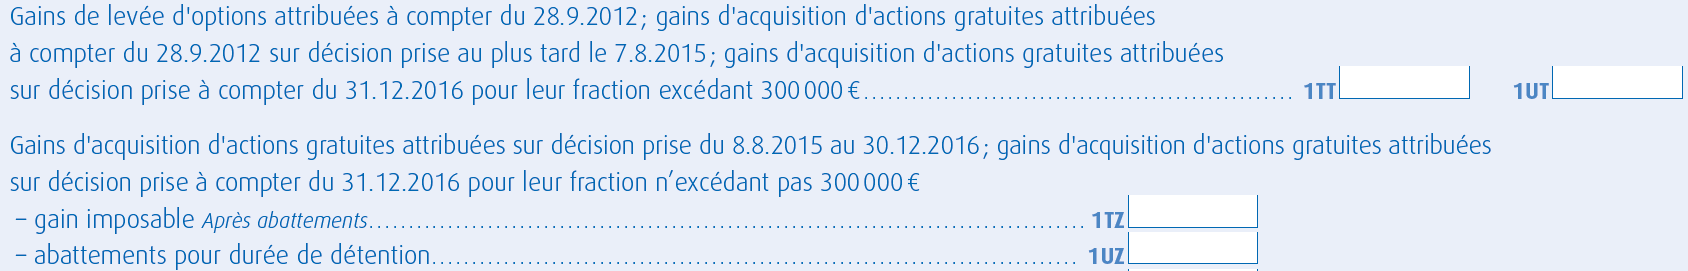 Declaration Des Gains De Stock Options Et D Actions